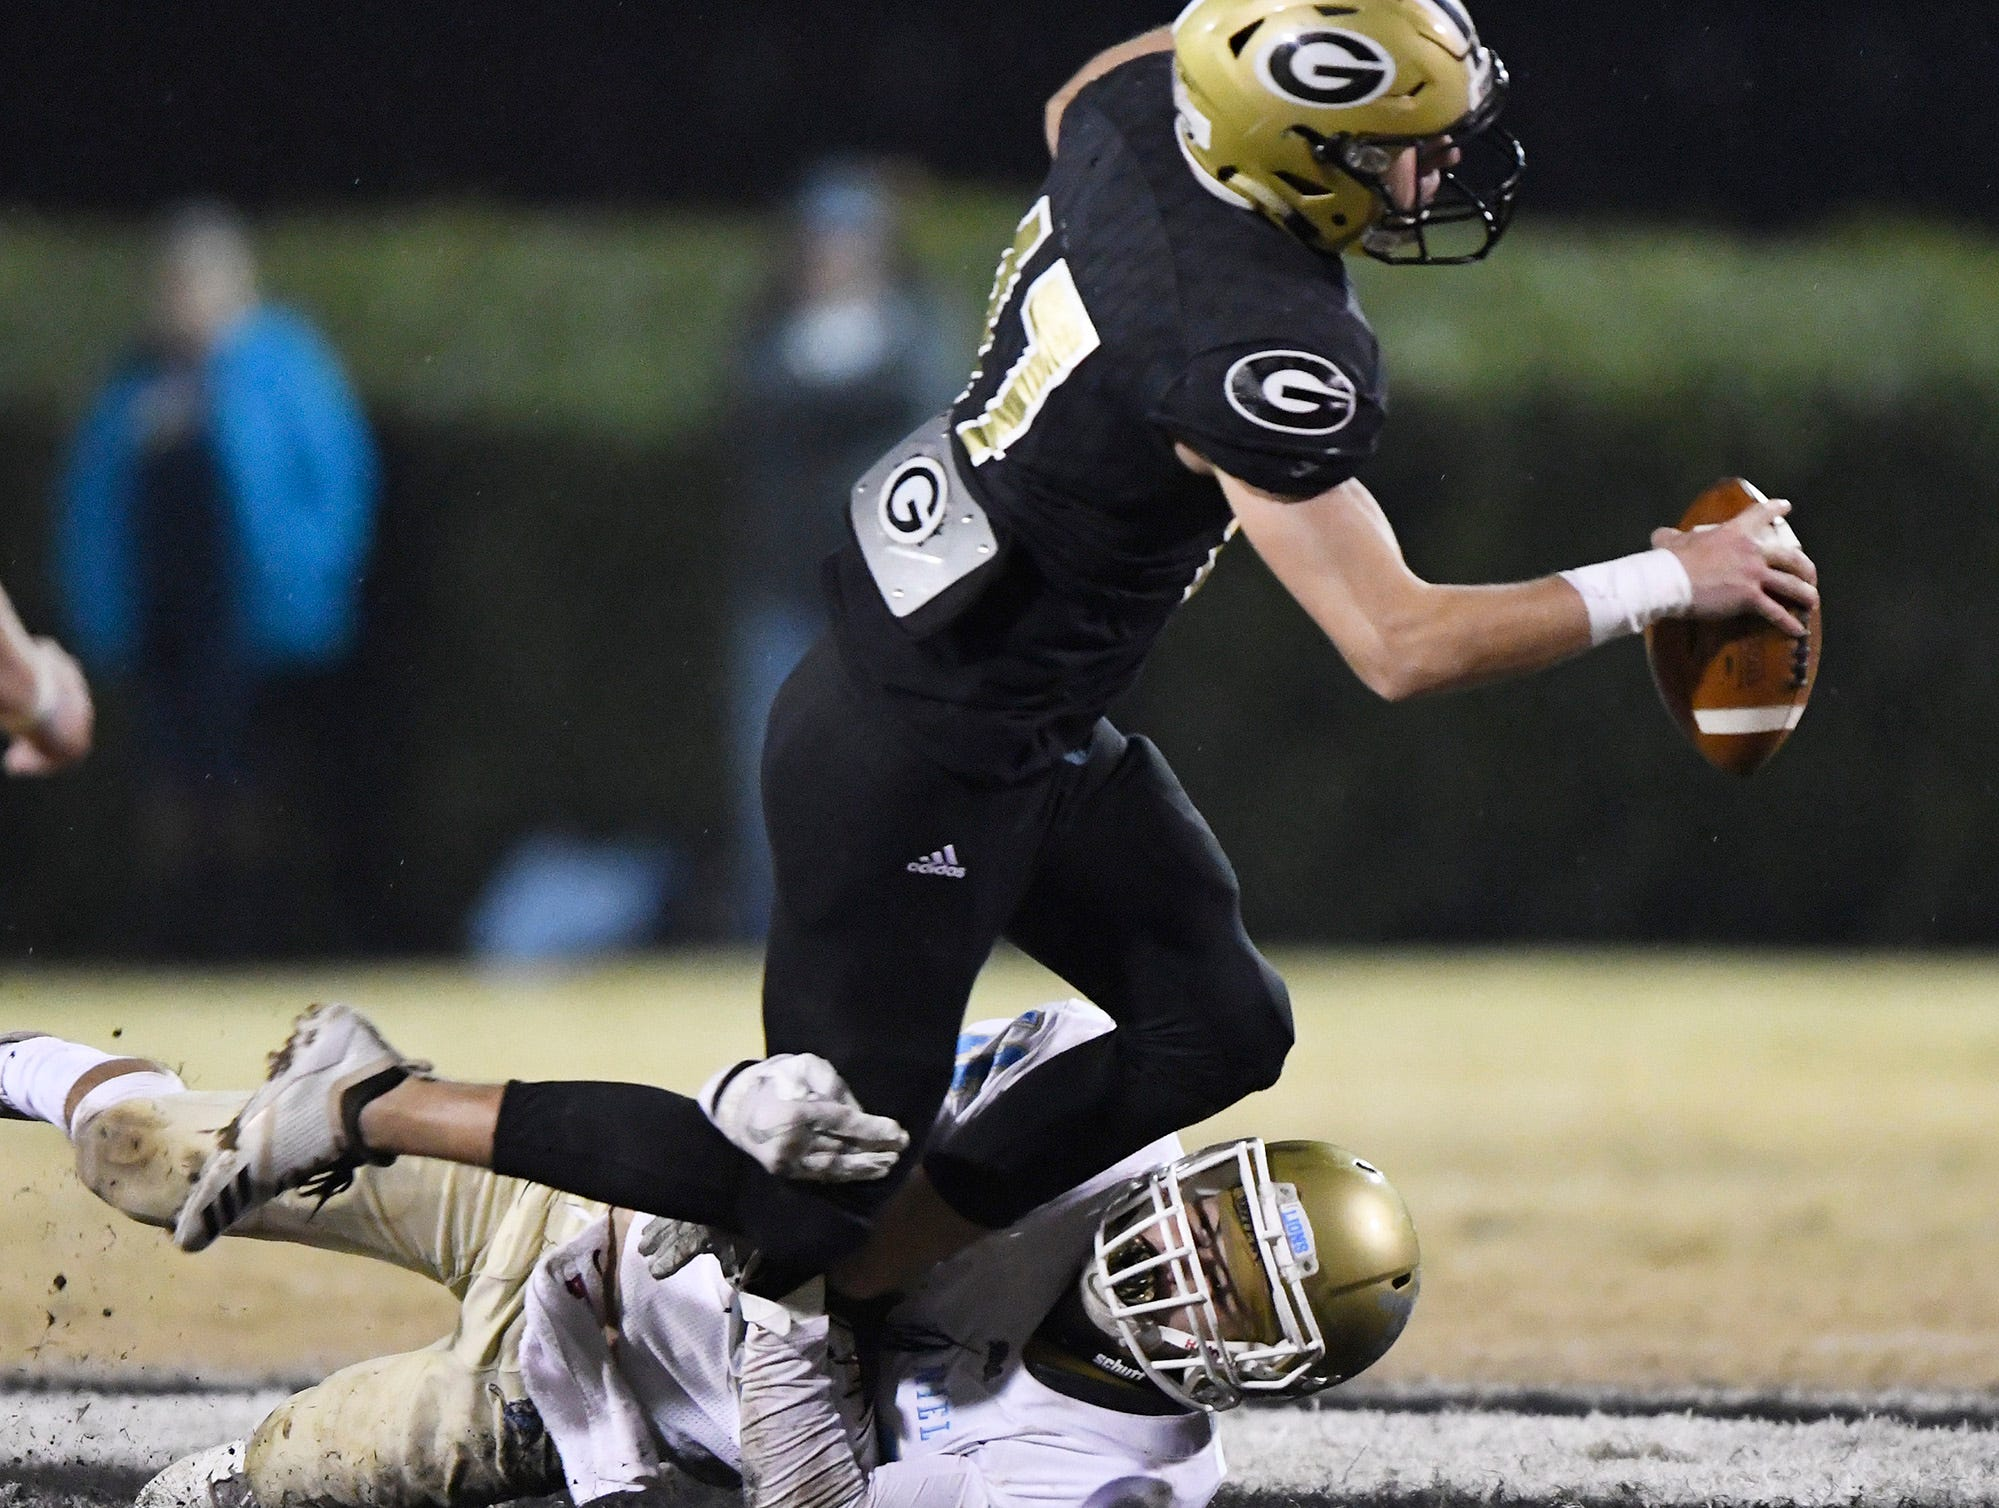 Greer quarterback Matthew Huff (17) is brought down by Daniel's Bubba McAtee (11) in the class AAAA upstate championship Friday, November 30, 2018 at Greer's Dooley Field.